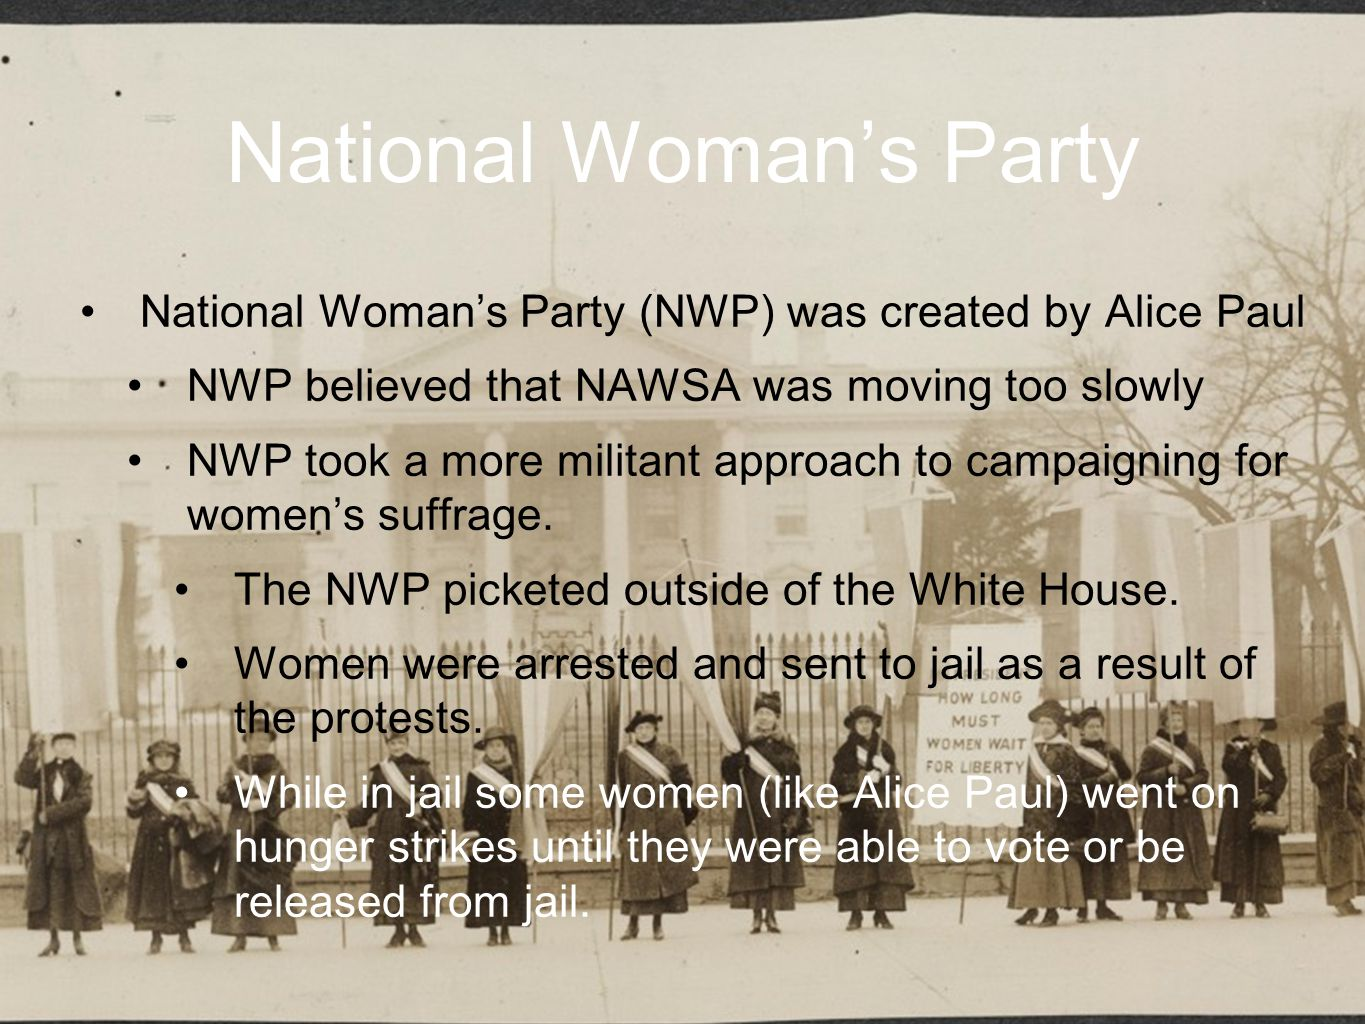 National Association Opposed to Woman Suffrage National Association Opposed to Woman Suffrage (NAOWS) was formed in New York City in 1911 NAOWS felt that women's suffrage would decrease women's work within their communities and societal reforms.